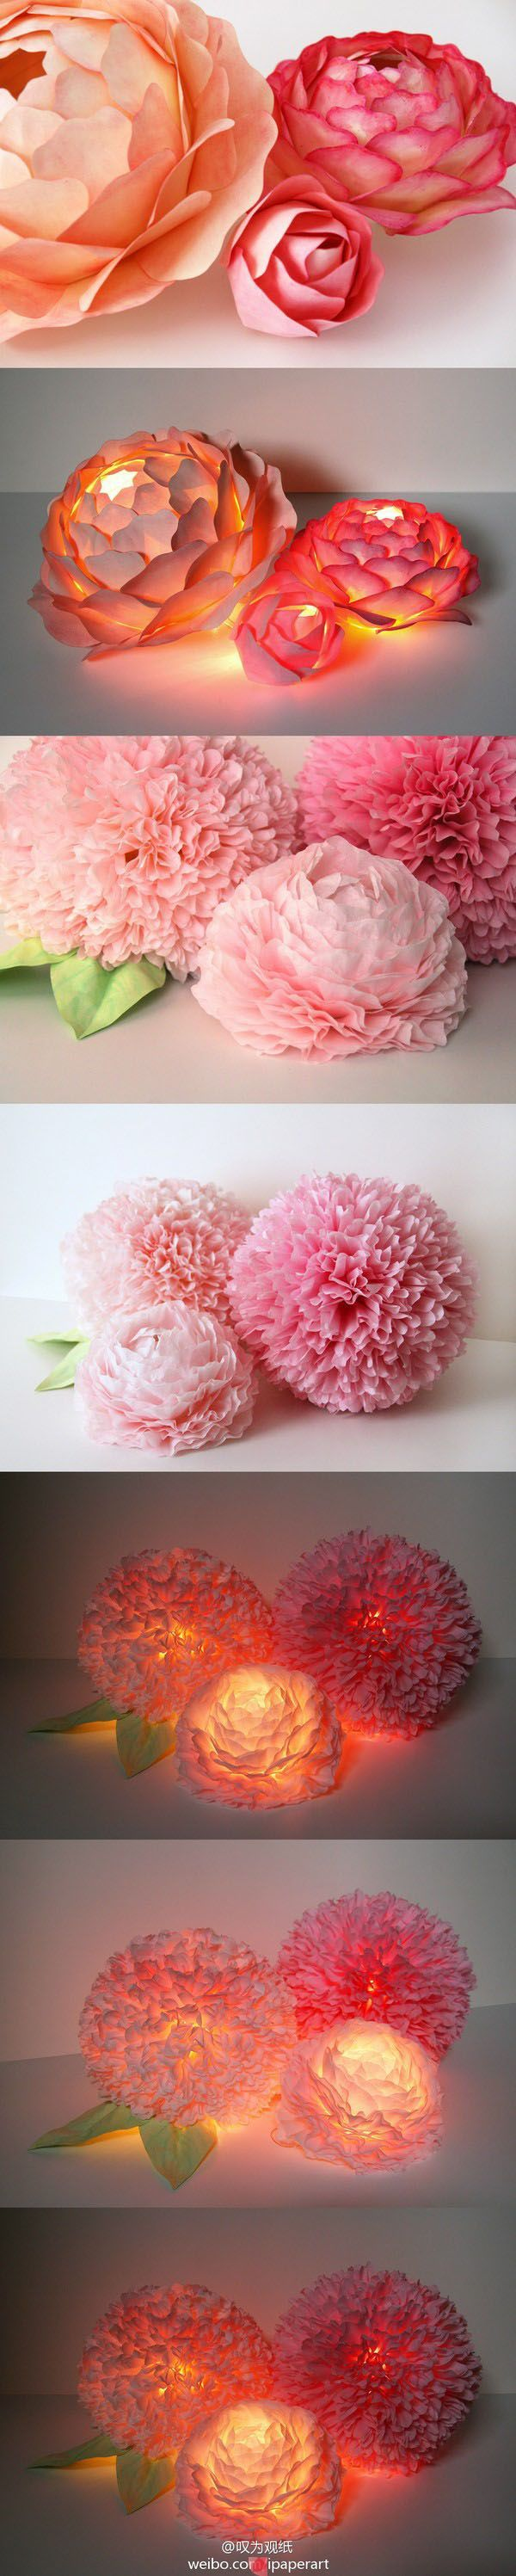 DIY Handmade Paper Flower Art